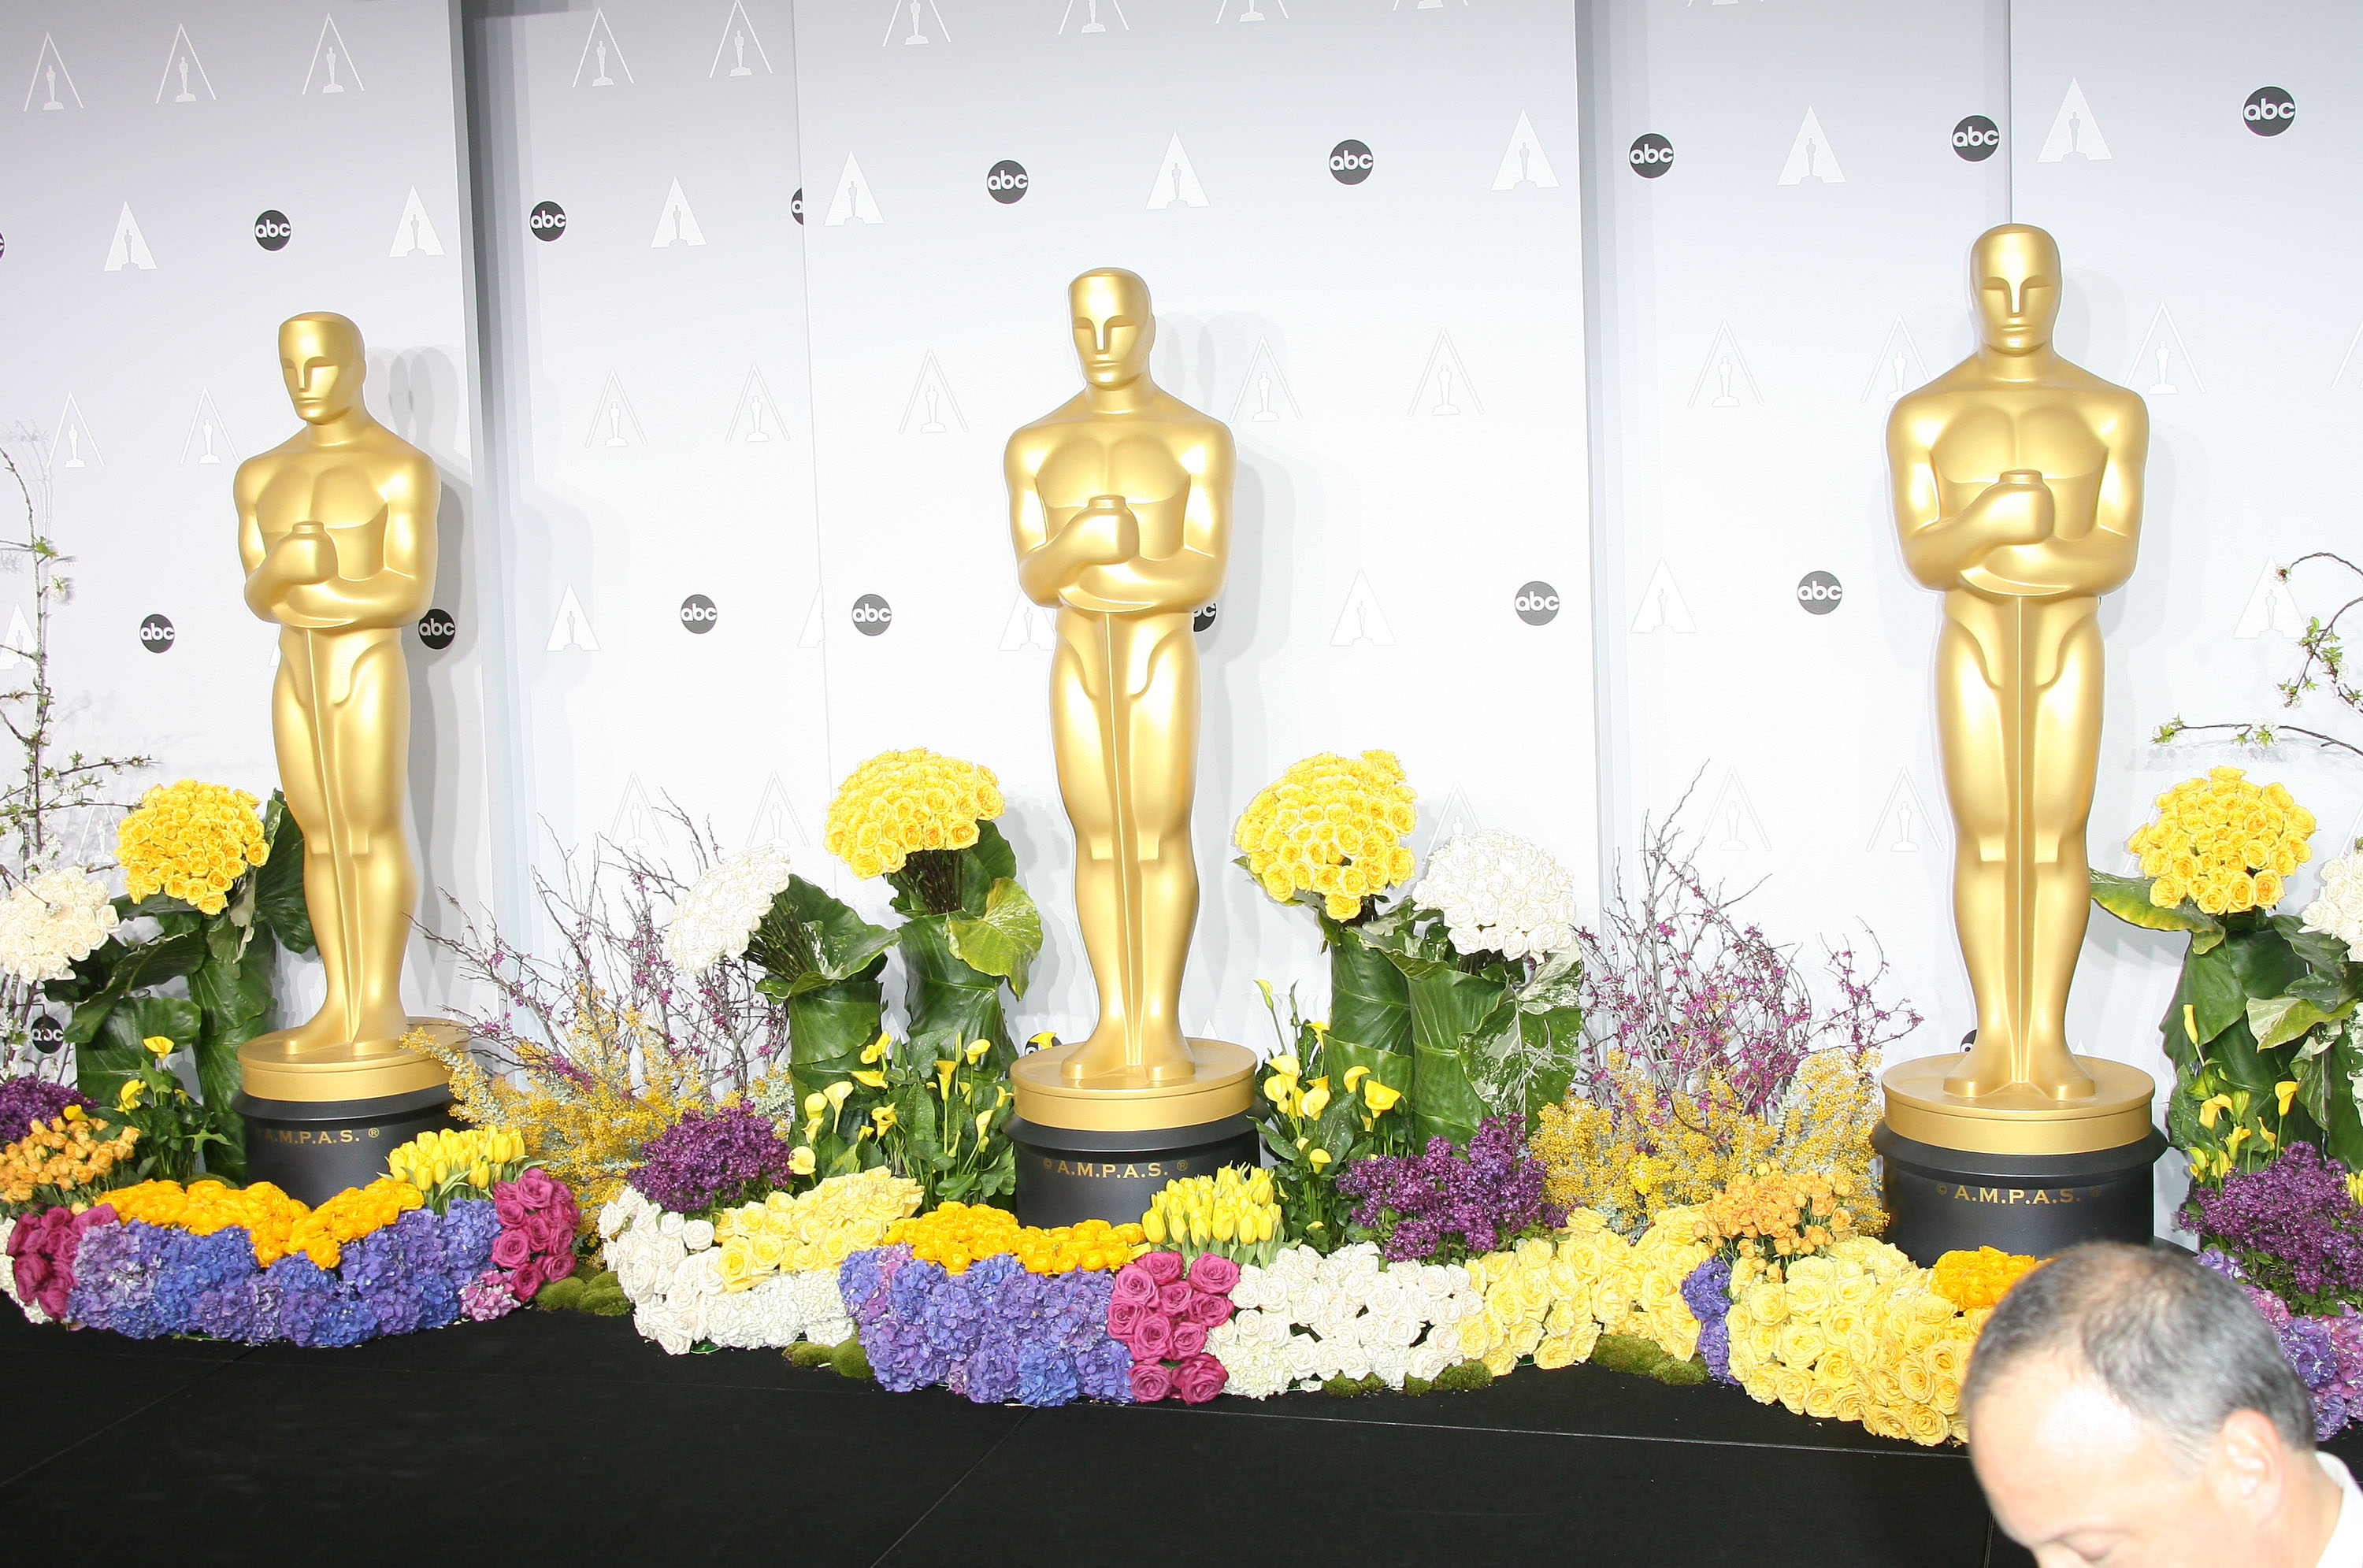 86th Annual Oscars Press Room